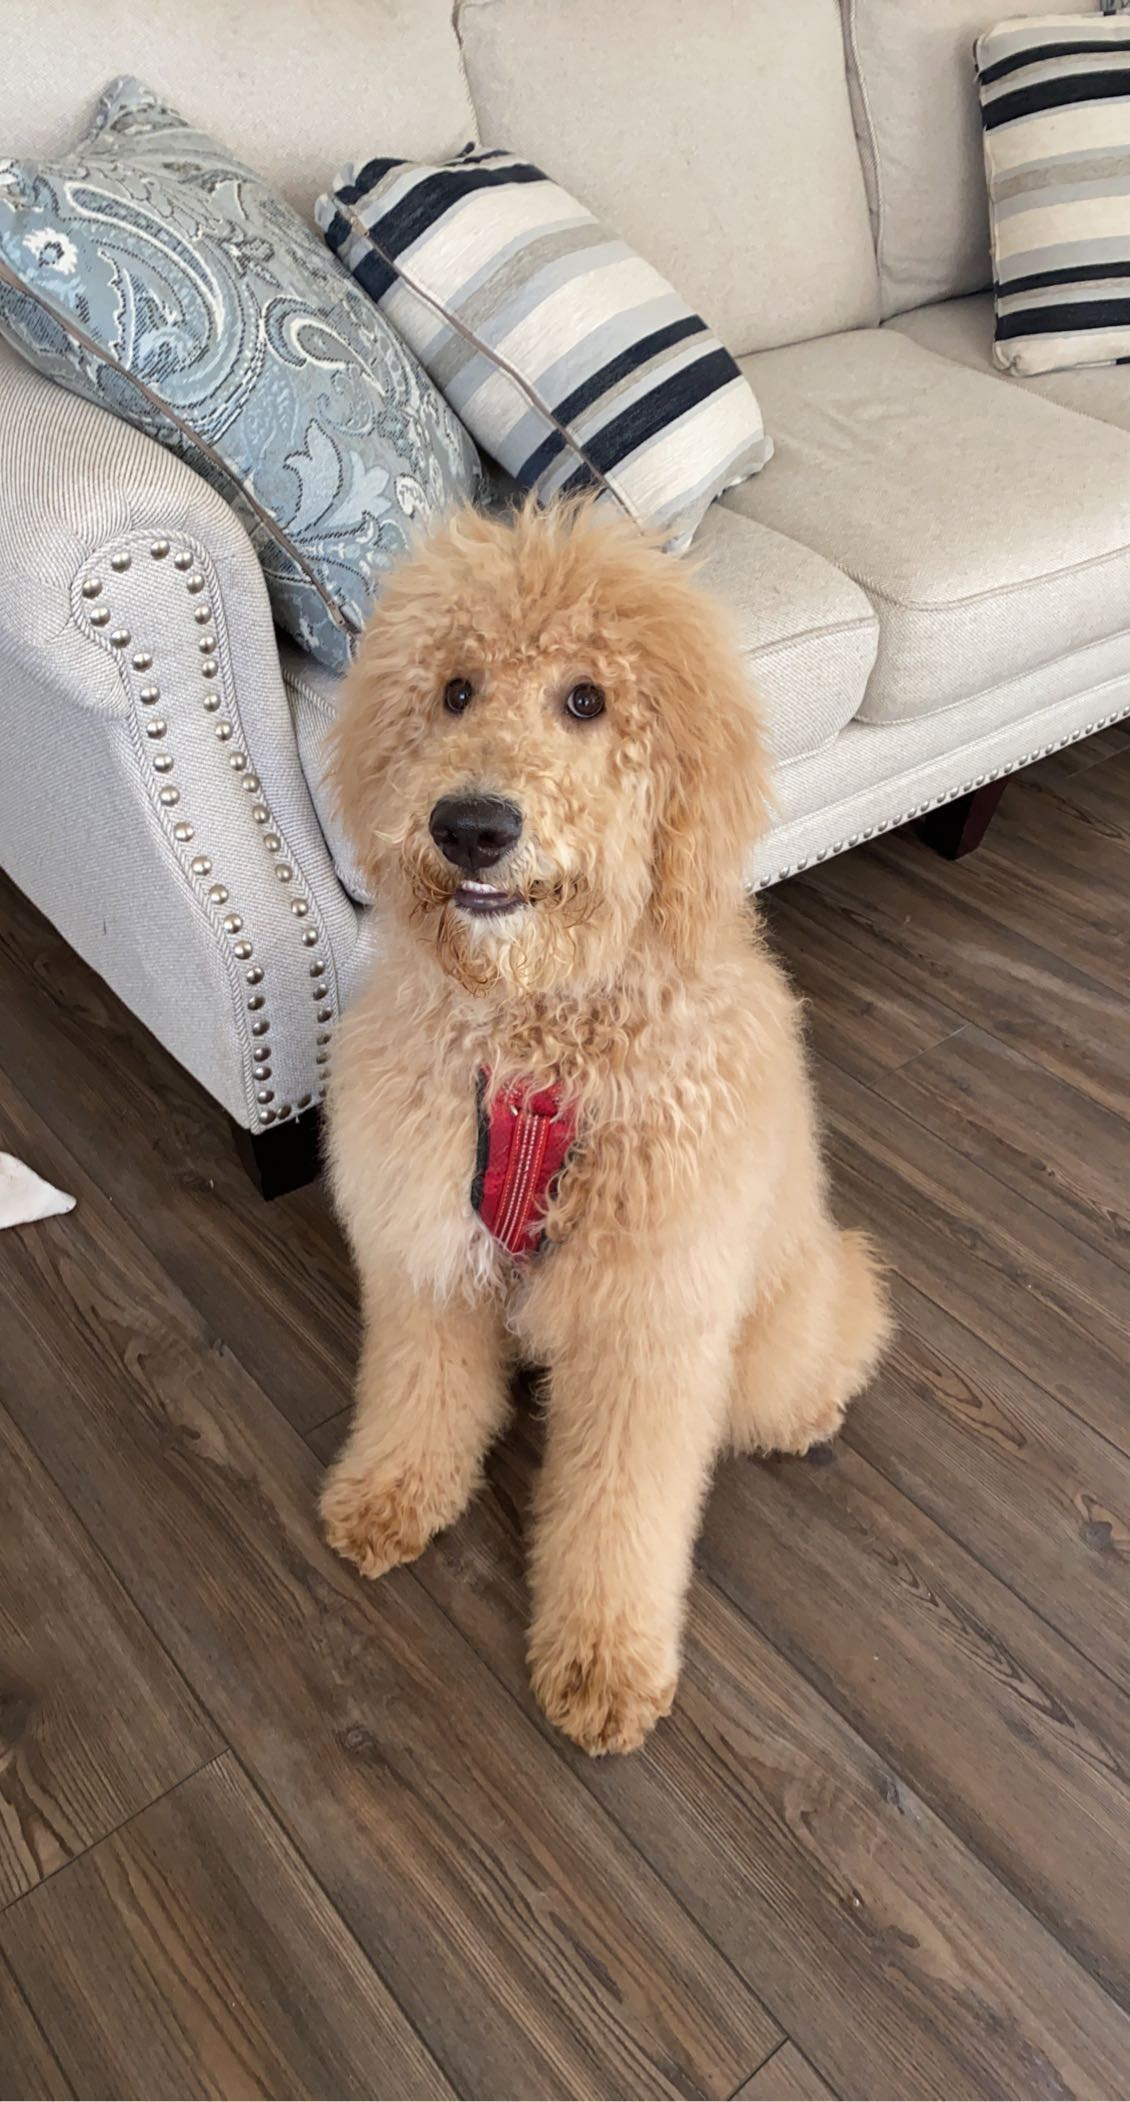 Sunny The Smiling Goldendoodle